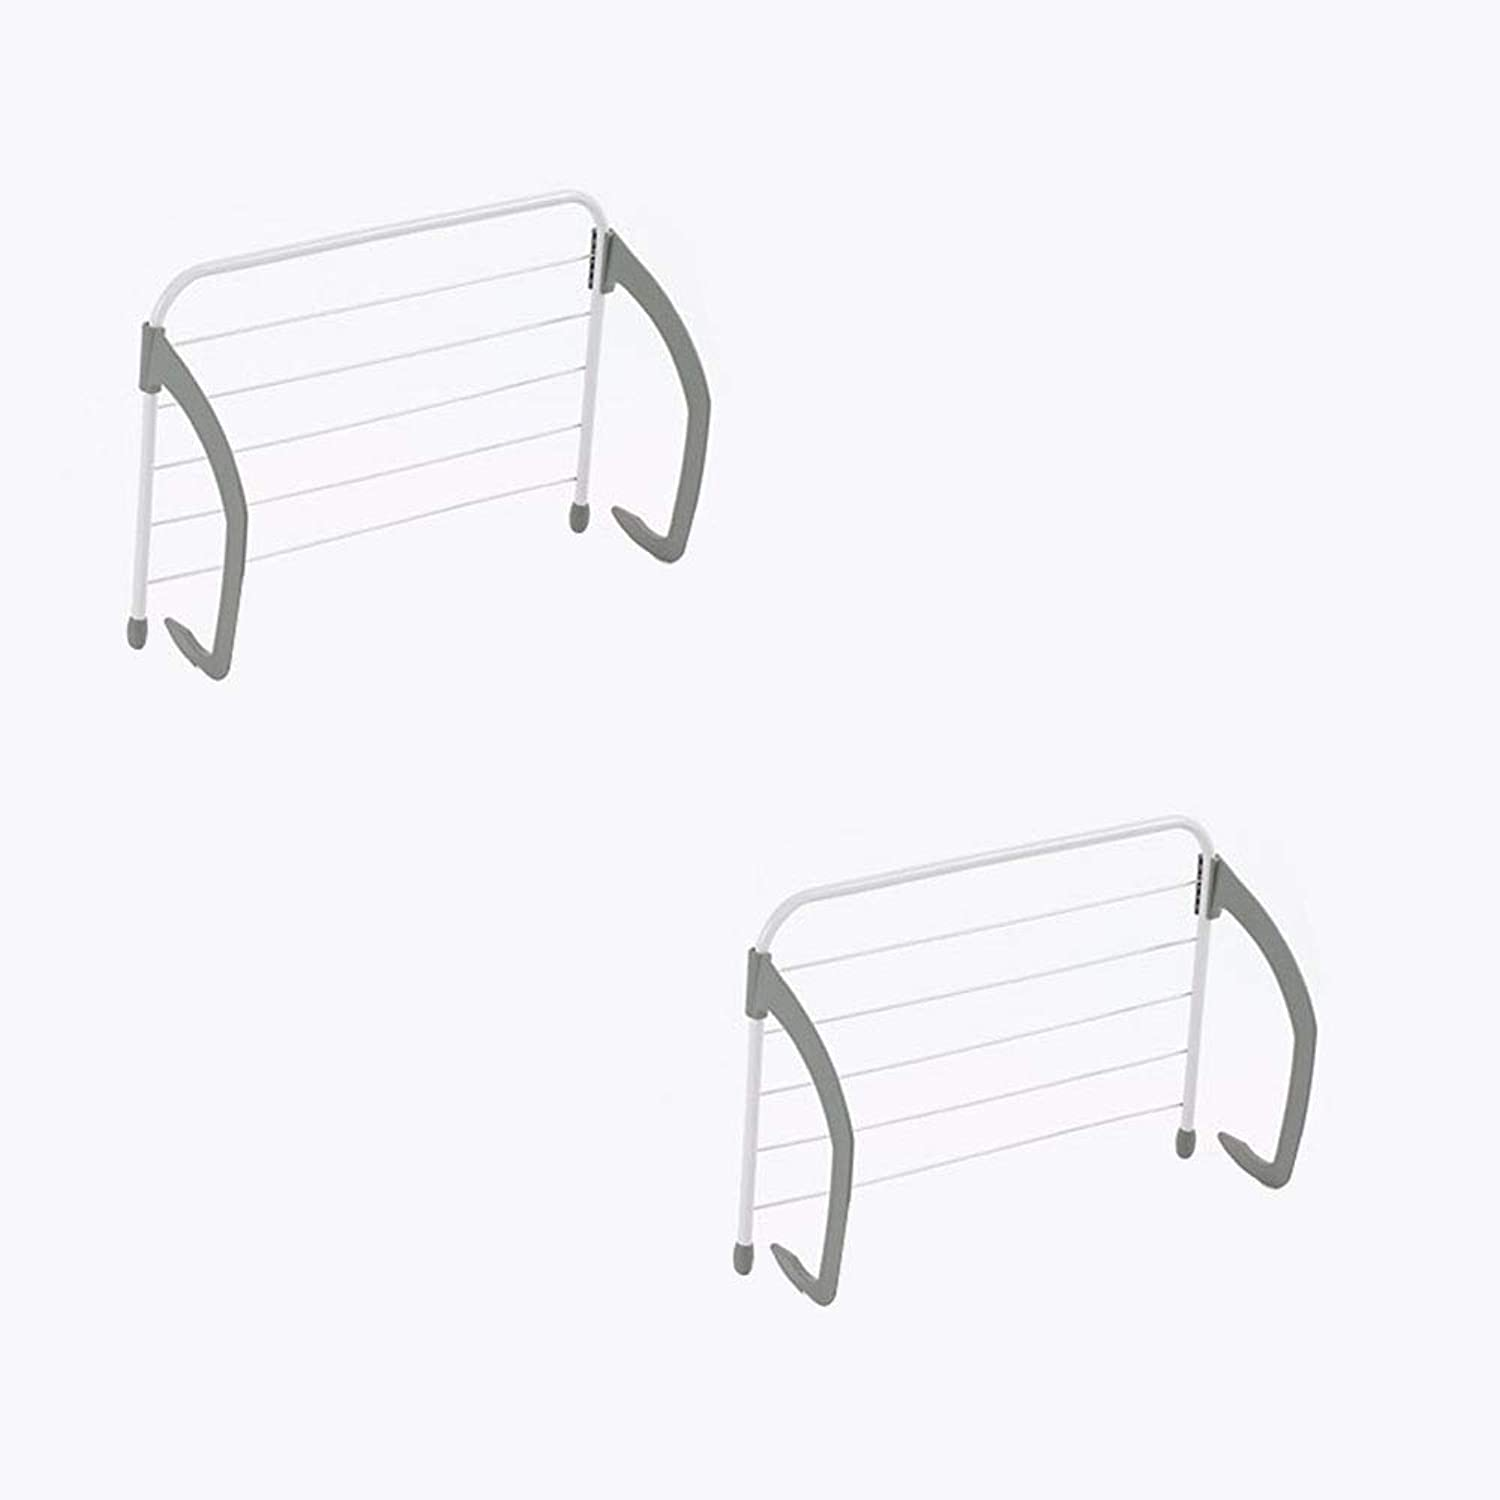 2 Pieces Folding Clothes Hanger Adjustable Drying Rack Retractable Coat Hanger for Living Room Bathroom Bedroom Office Easy Inssizetion